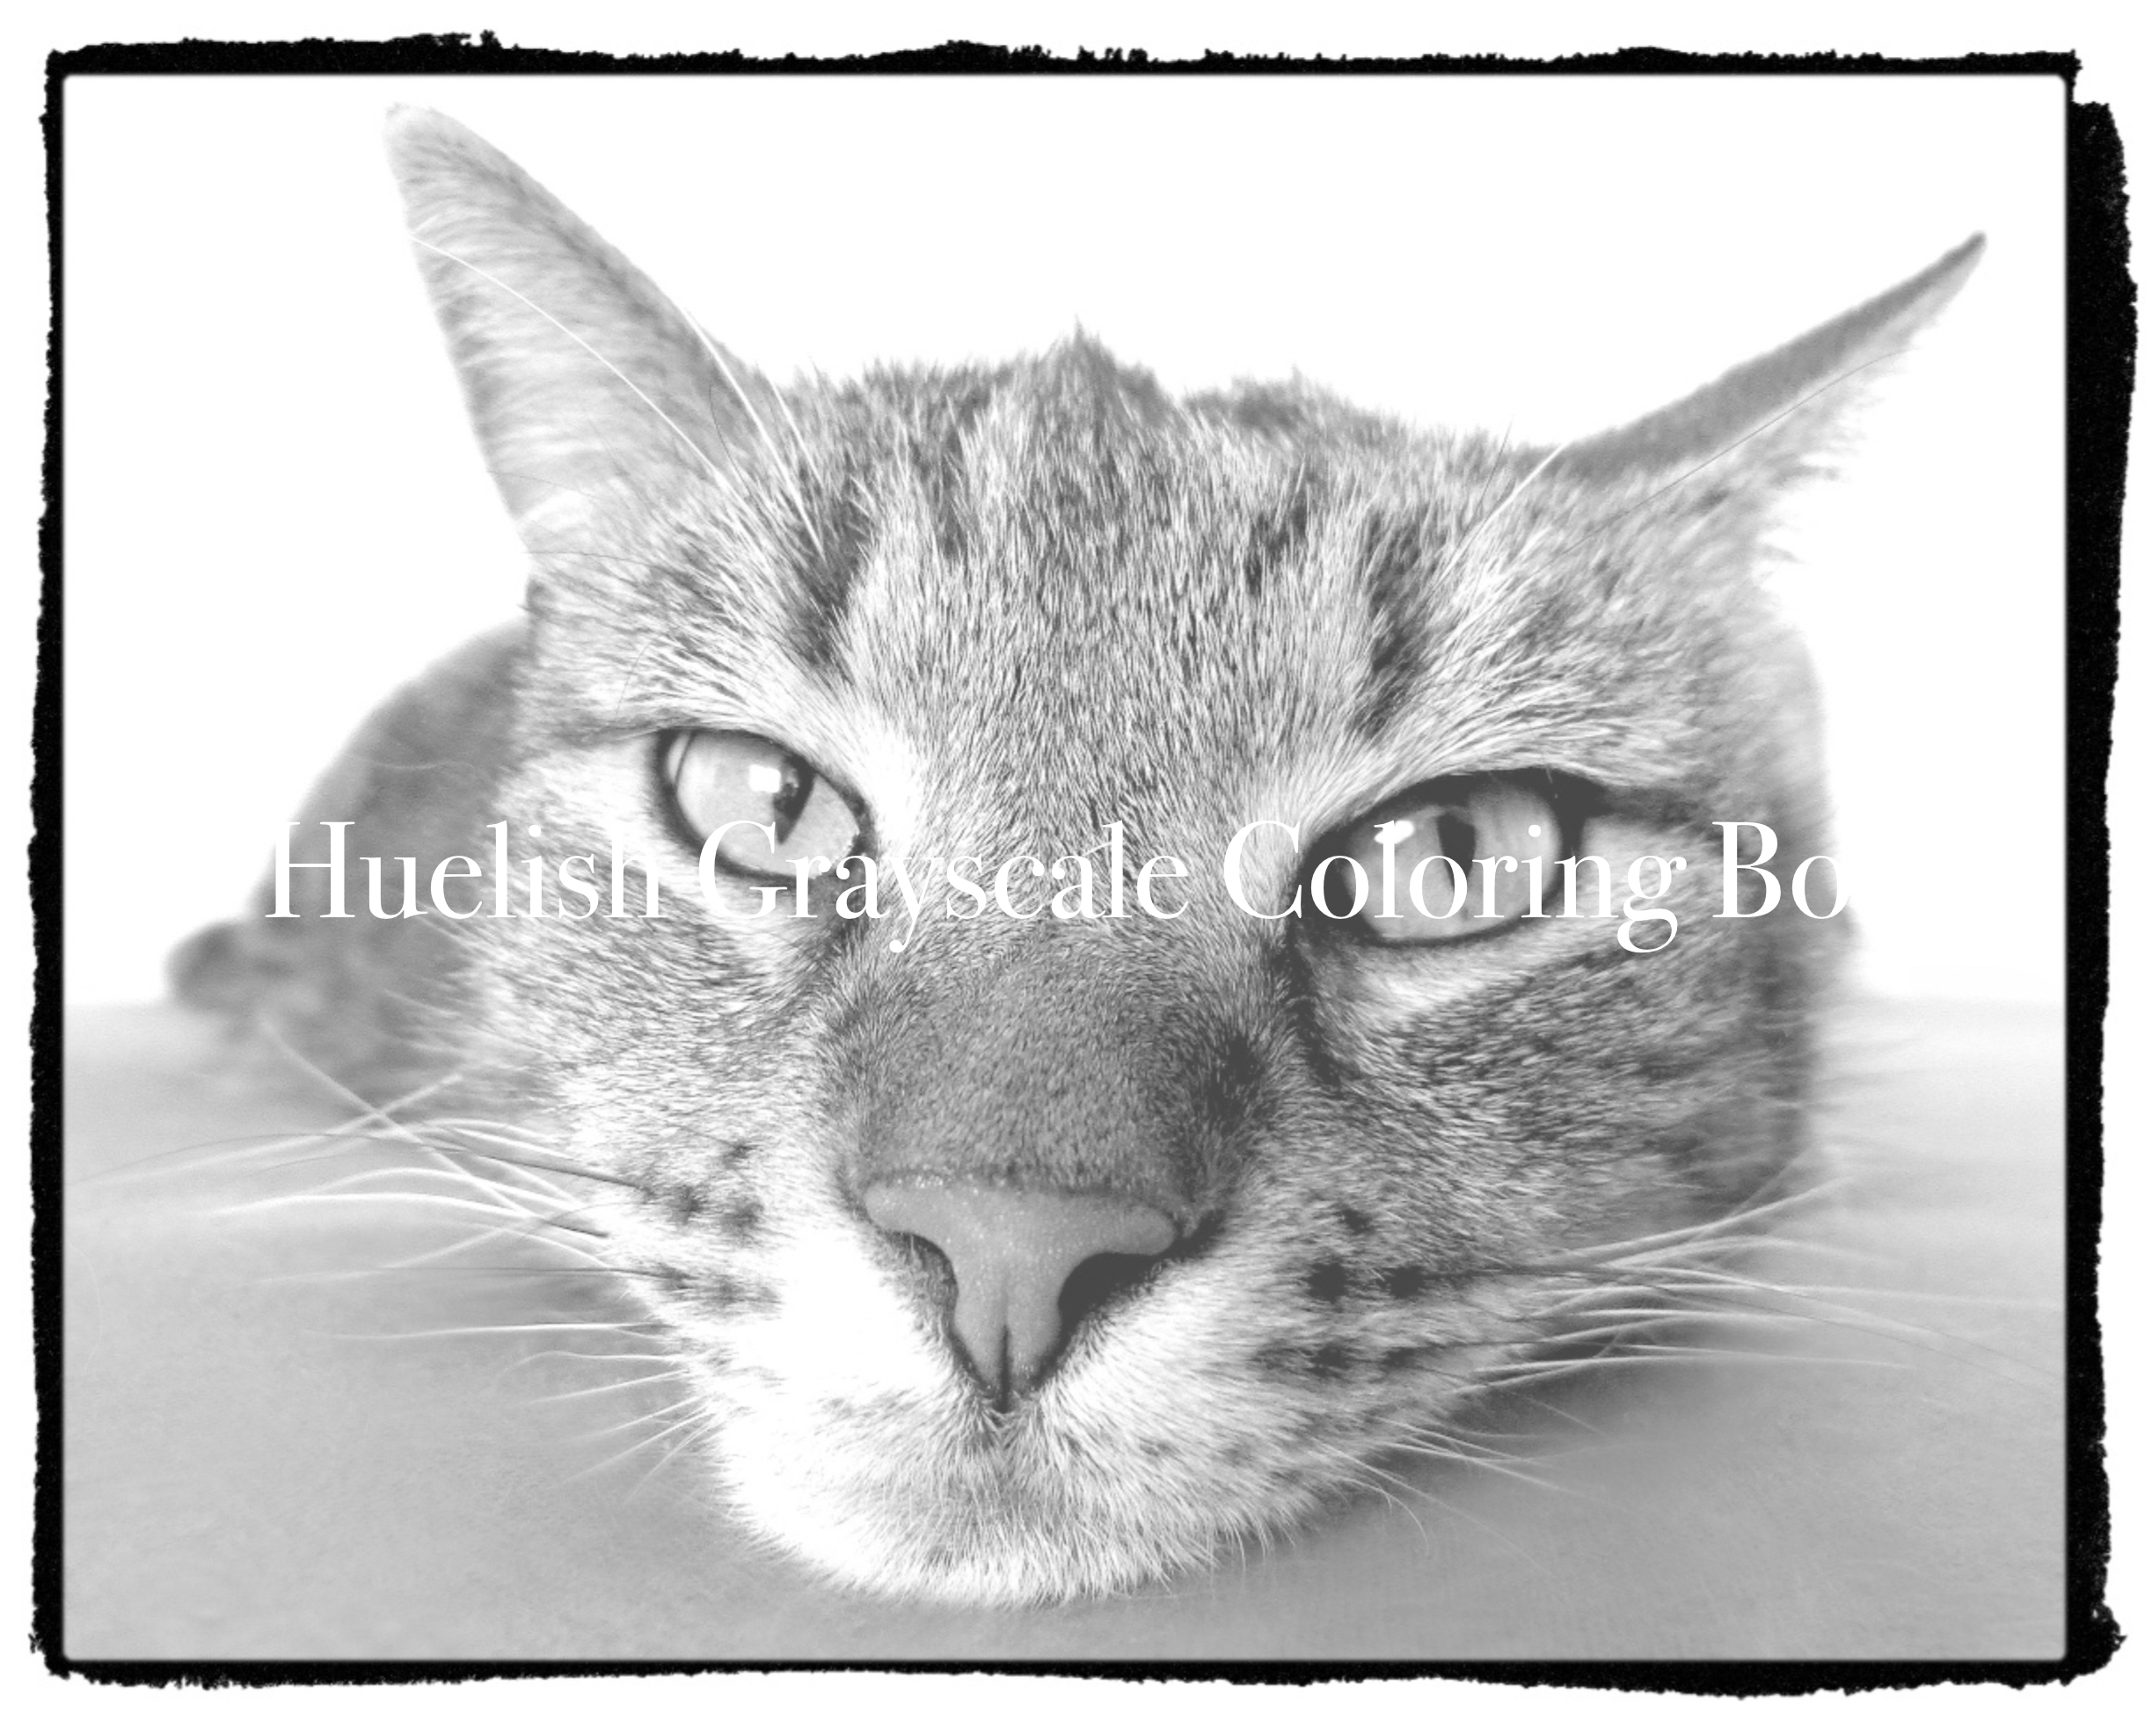 Downloadable Grayscale Coloring Page: Cat from Beautiful Creatures